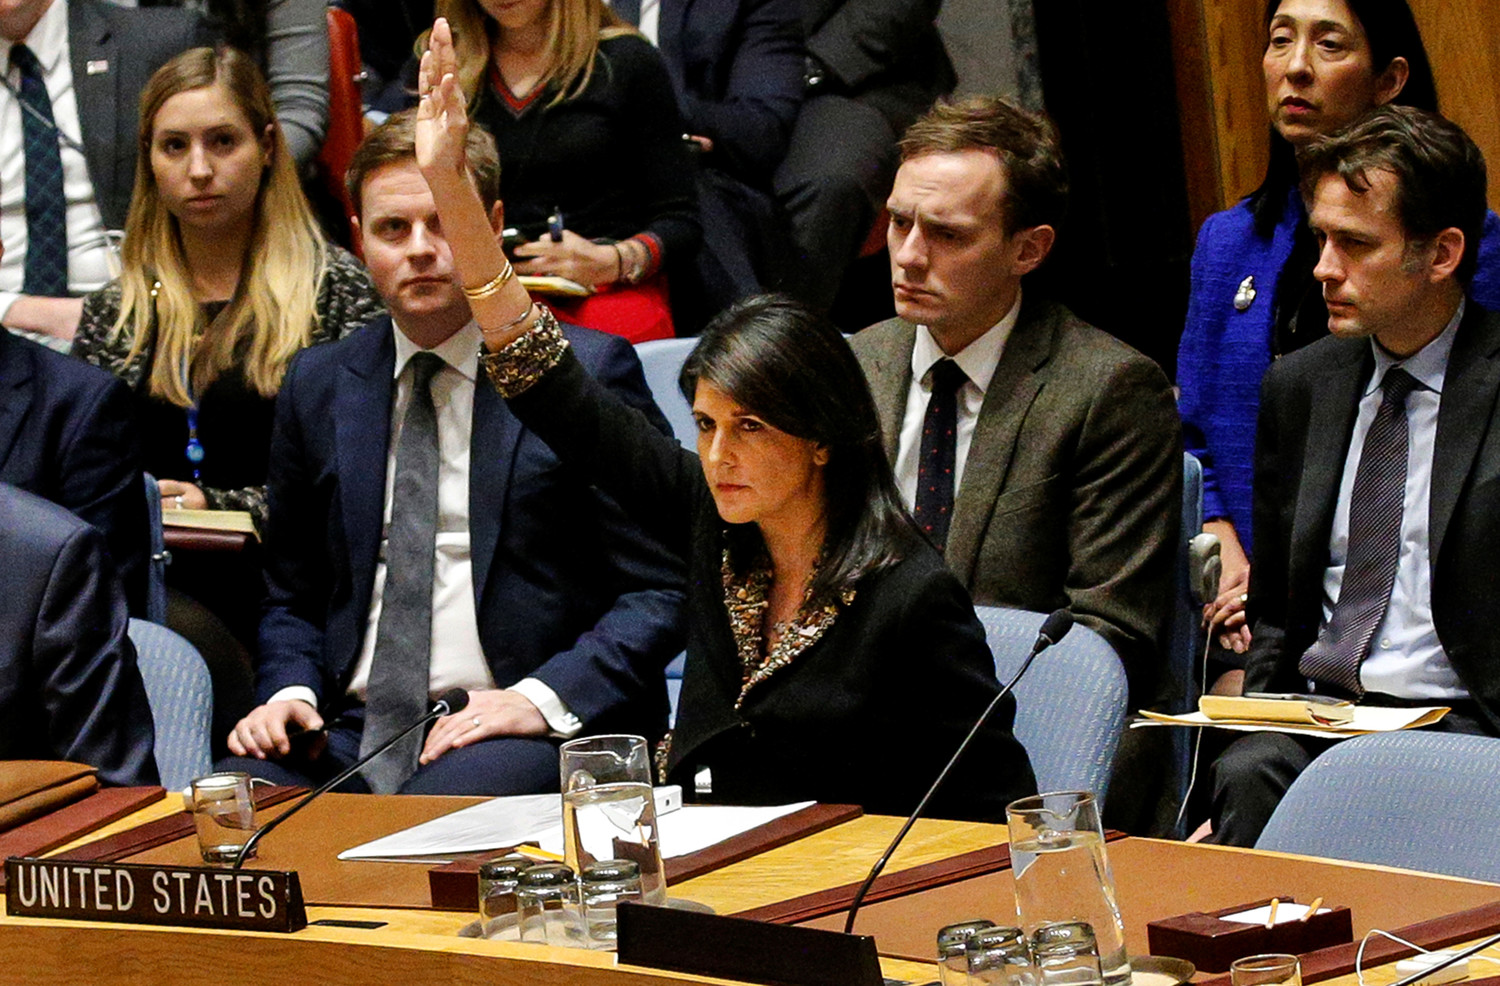 United States Ambassador to the United Nations Nikki Haley vetos an Egyptian-drafted resolution on the status of Jerusalem, at the United Nations Security Council on Monday.